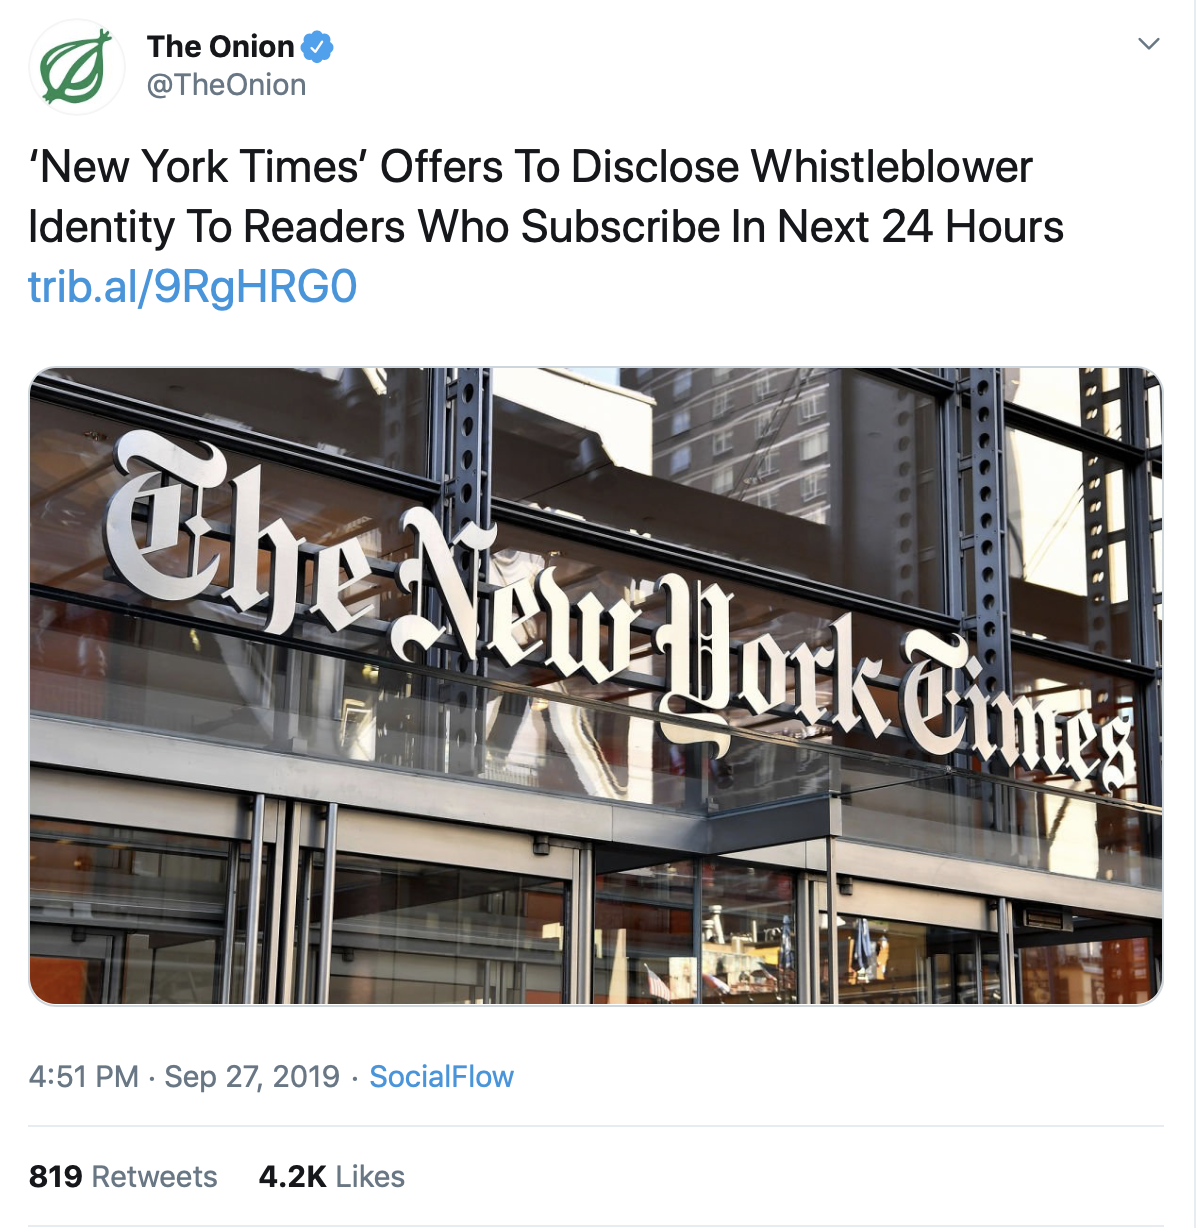 THE ONION TAKES A SHOT AT THE New York TIMES FOR ITS STORY REPORTING SOME FACTS ABOUT THE UKRAINE WHISTLEBLOWER.  here's a link TO THE ONION .